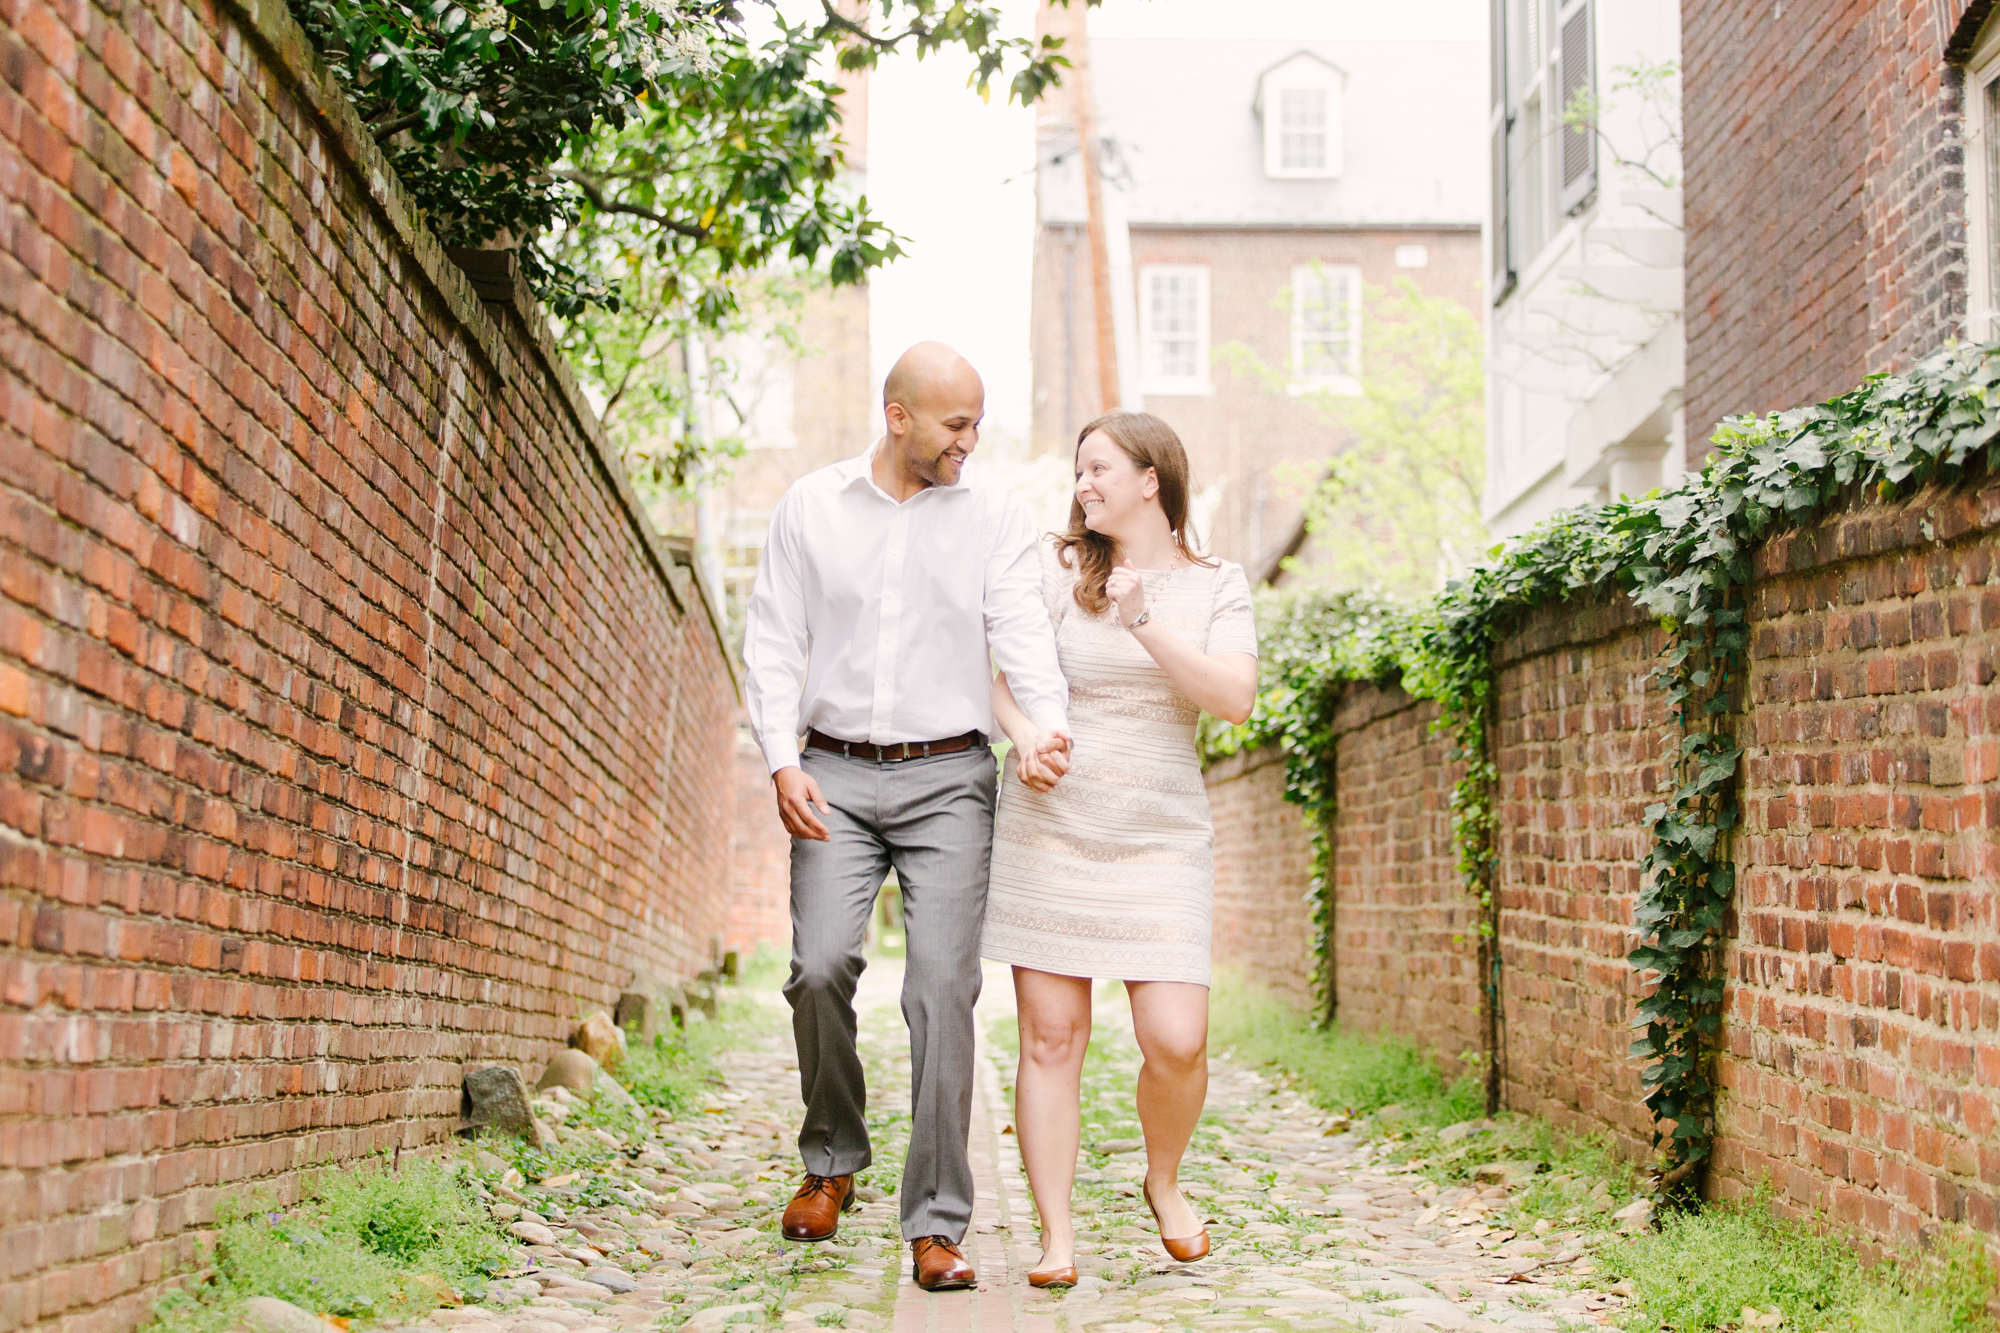 Maral Noori Photography | Kate and Anup | Old Town Alexandria | Jones Point Photography | Virginia Wedding Photographer | Alexandria Engagement Photographer |